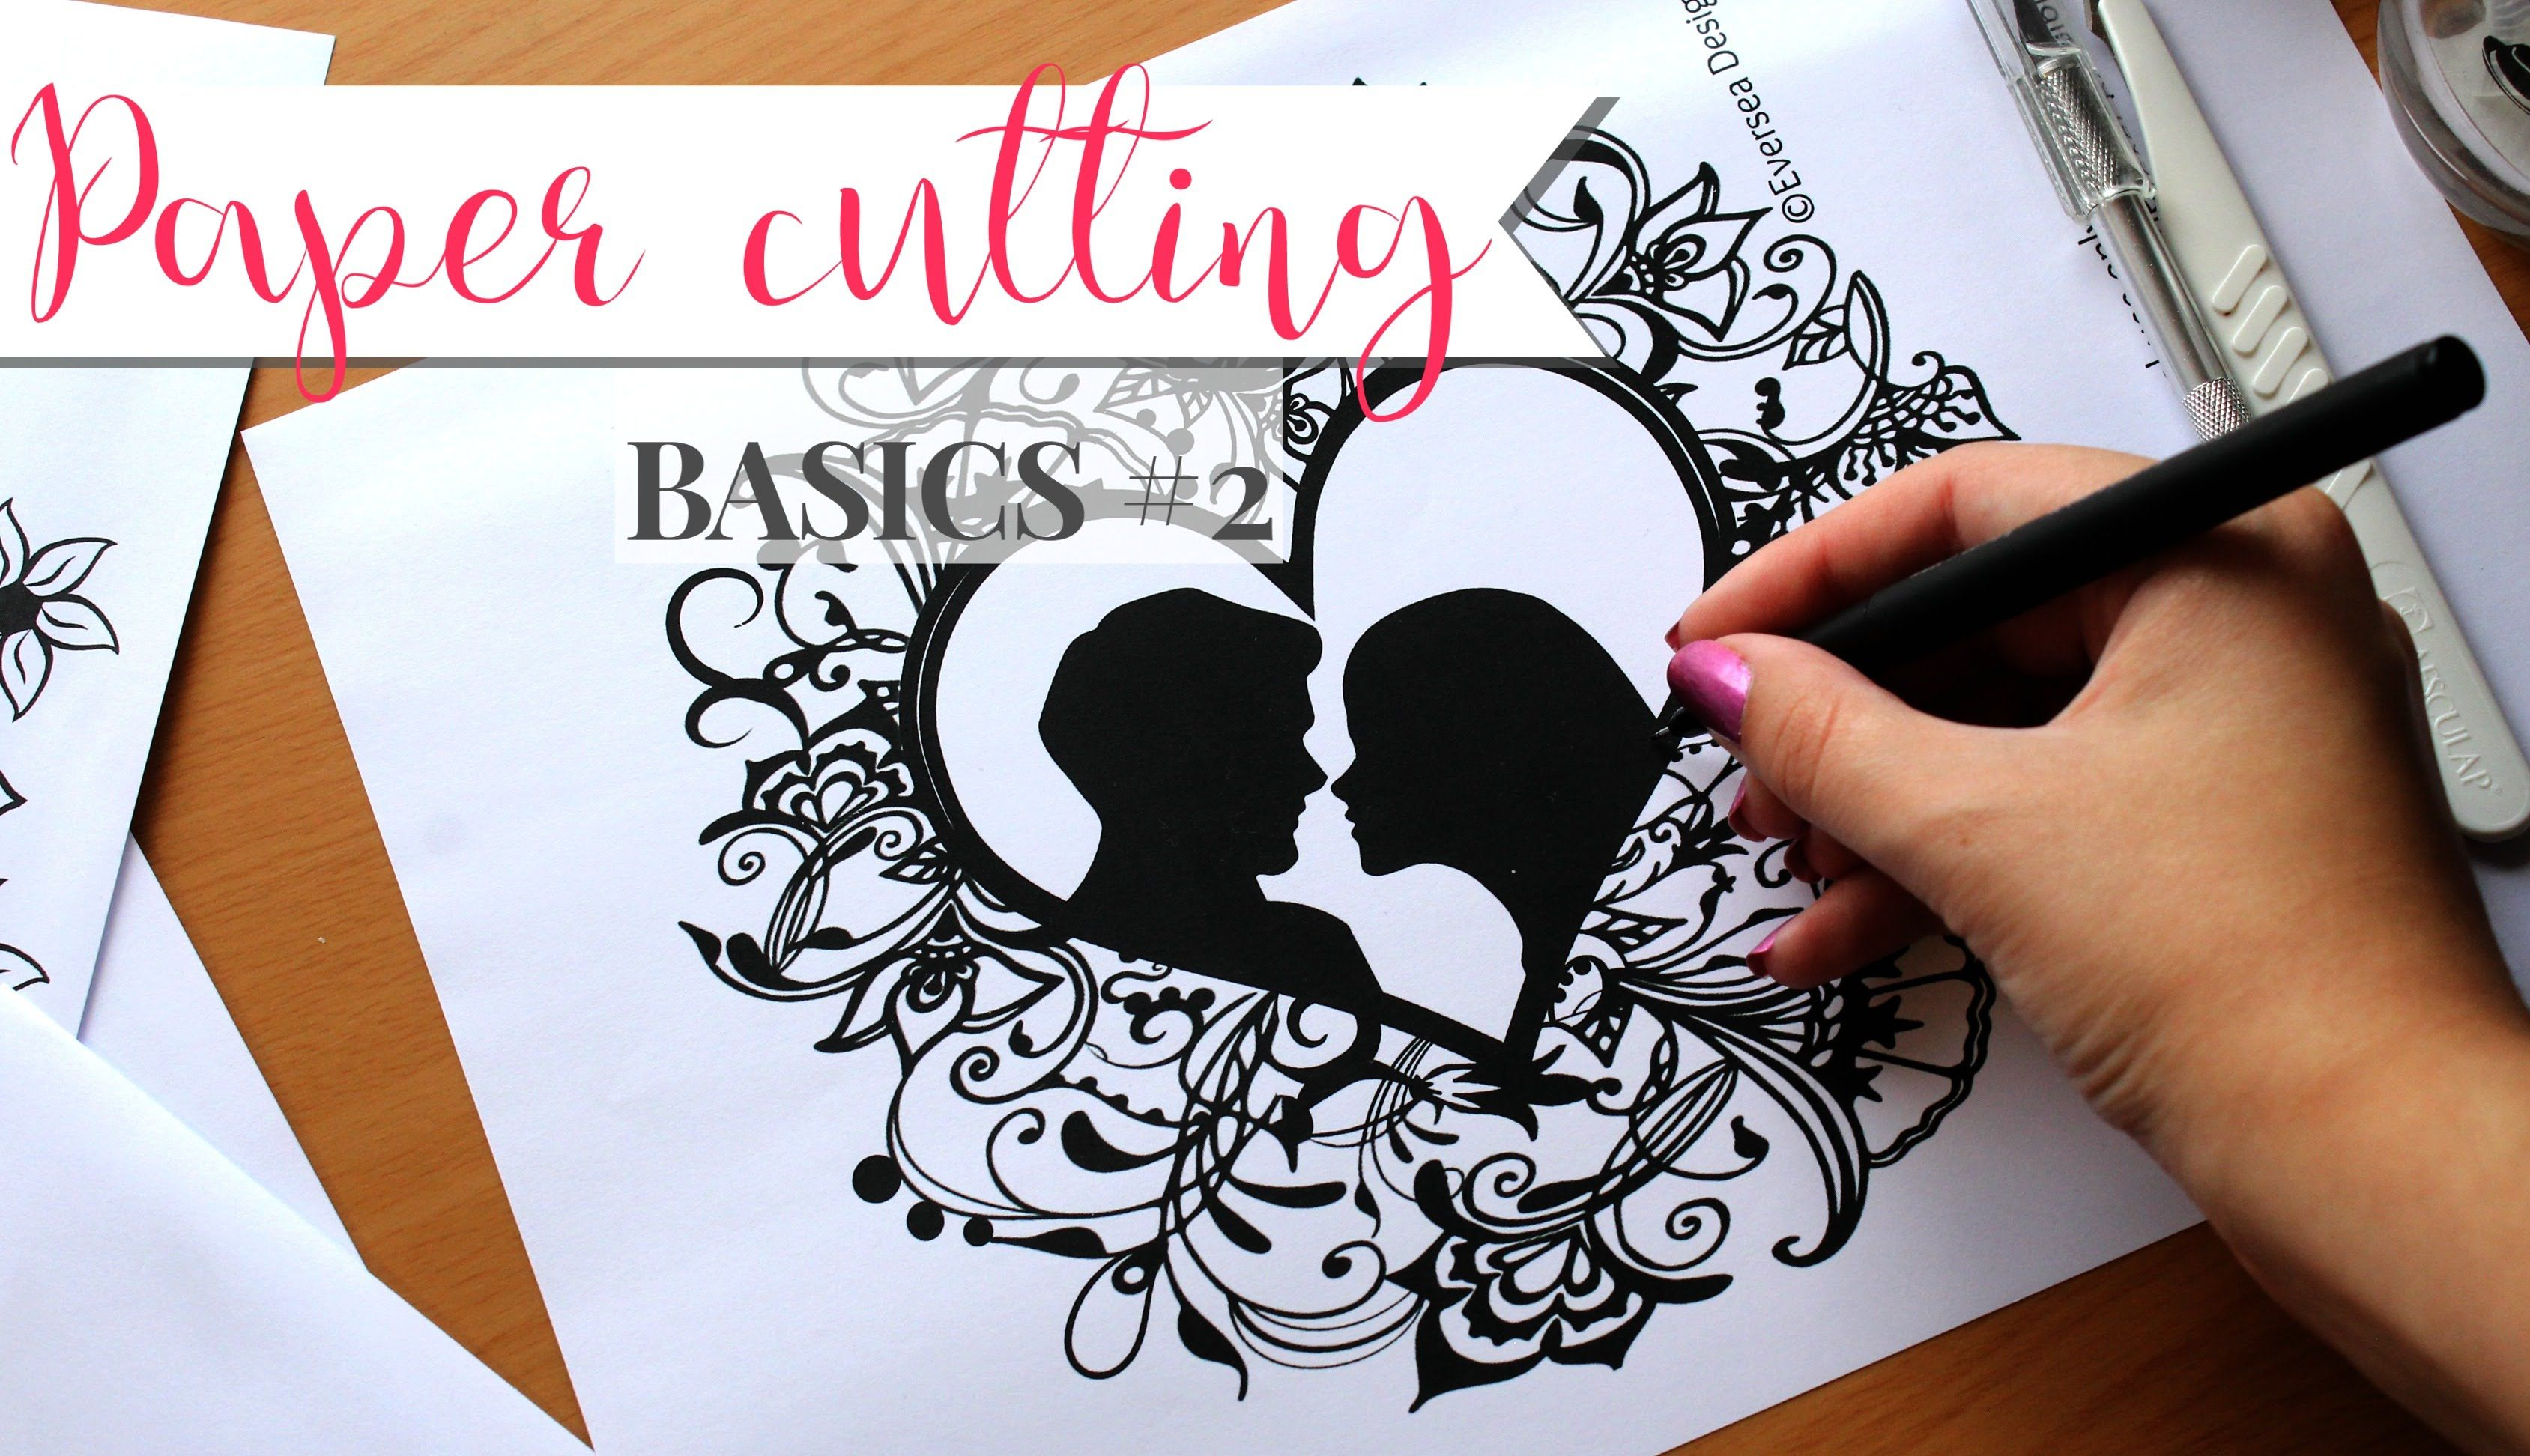 Paper cutting Basics #2 | How to draw templates by hand and ...